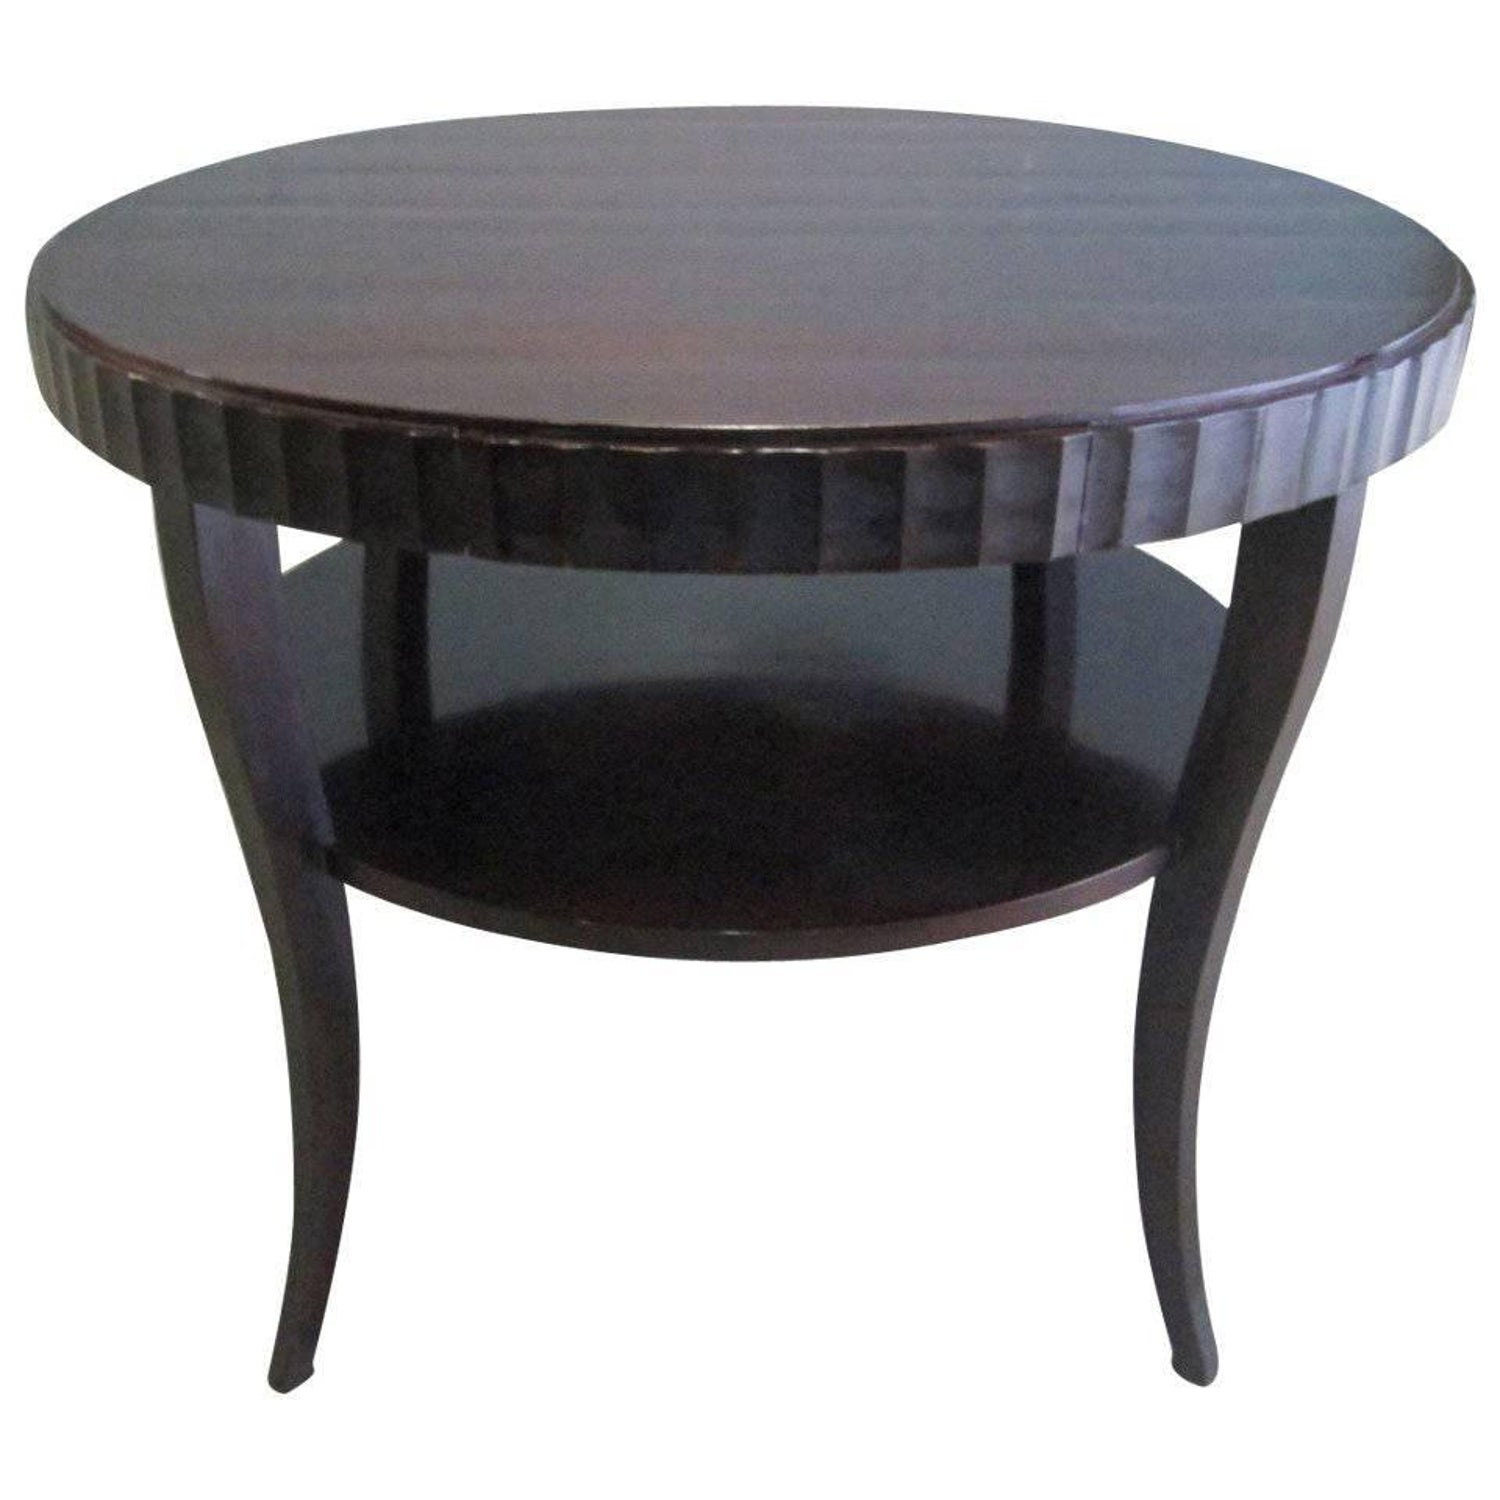 Barbara Barry Centre Table for Baker Furniture Company. Baker Furniture  Tables  Chairs  Sofas   More   418 For Sale at